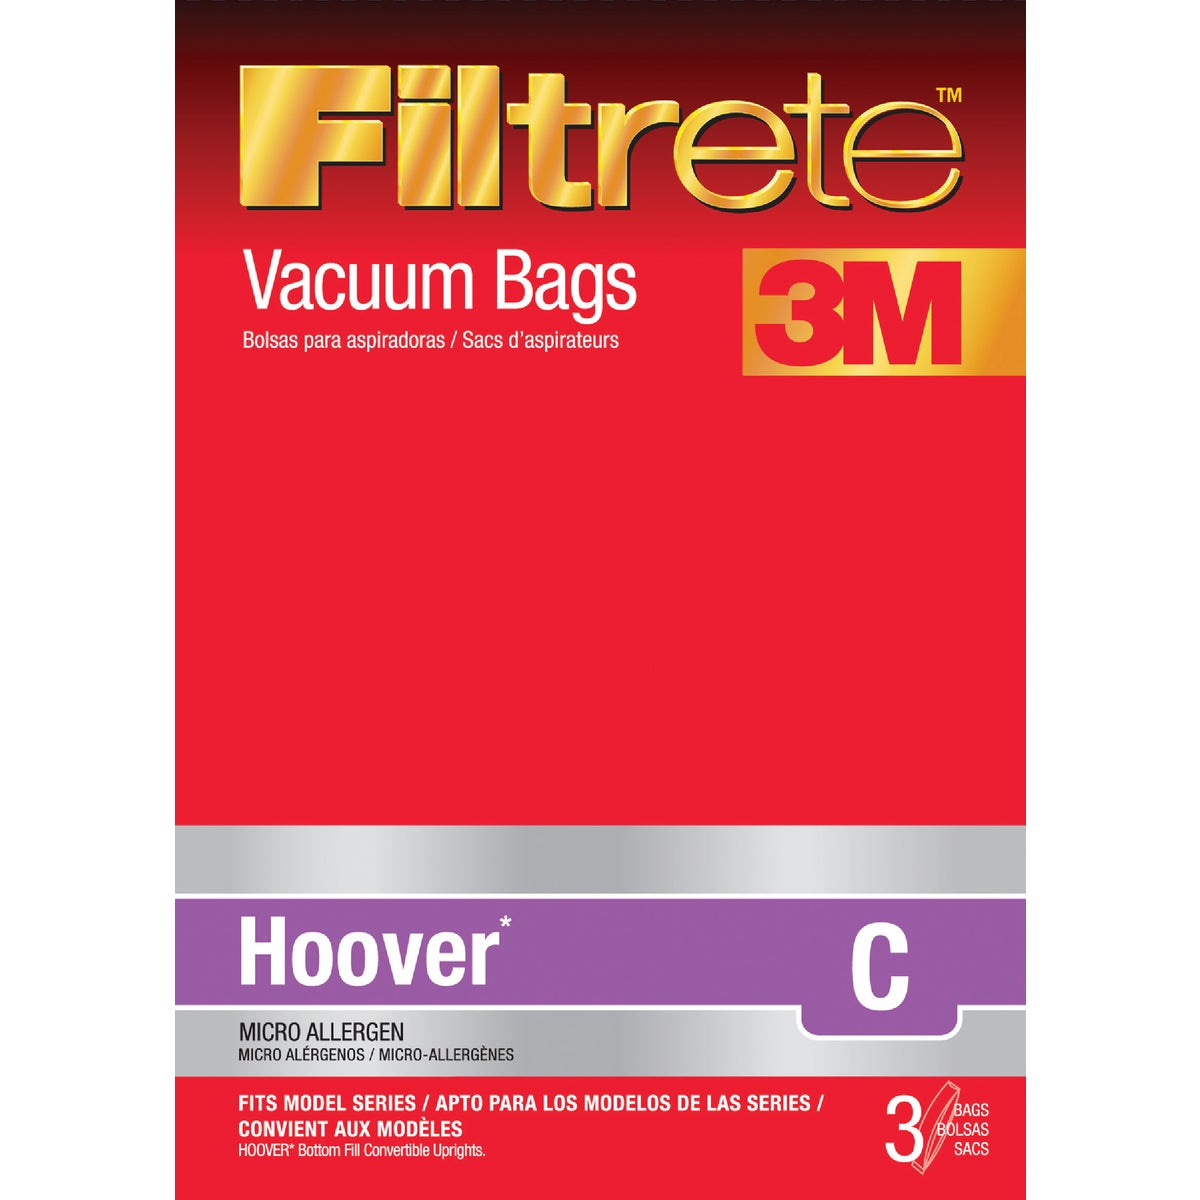 3M HOOVER C VACUUM BAG - 64723-6 by Electrolux Home Care